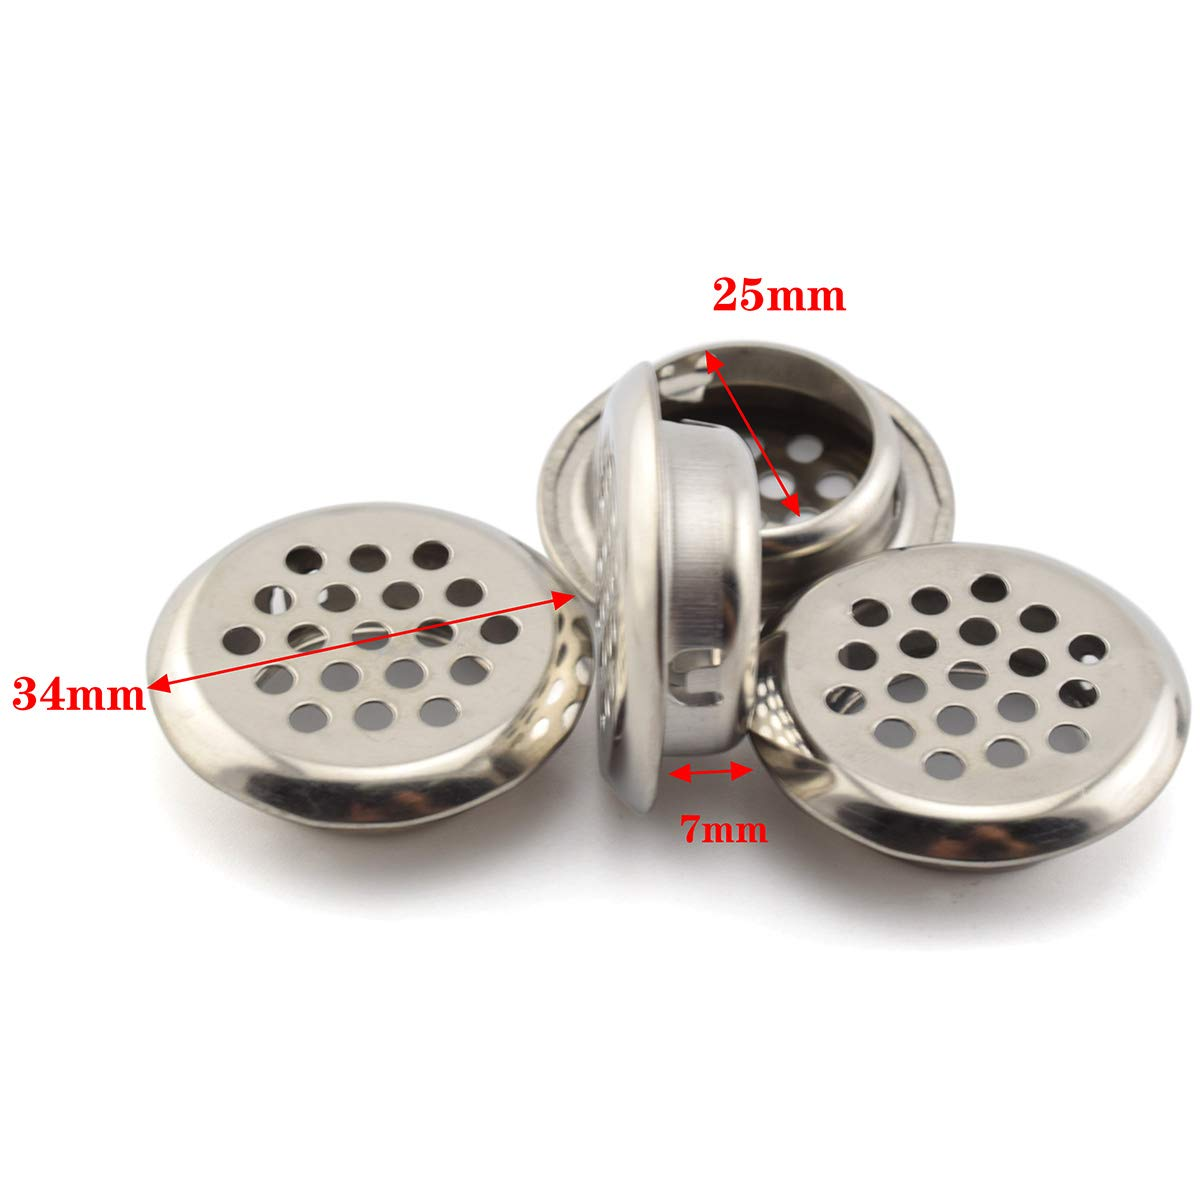 Black 6-Pack SDTC Tech 25 mm Circular Soffit Air Vent Stainless Steel Round Mesh Hole Louver Honeycomb Vent Cover Grommet for Cabinet Wardrobe Kitchen Bathroom